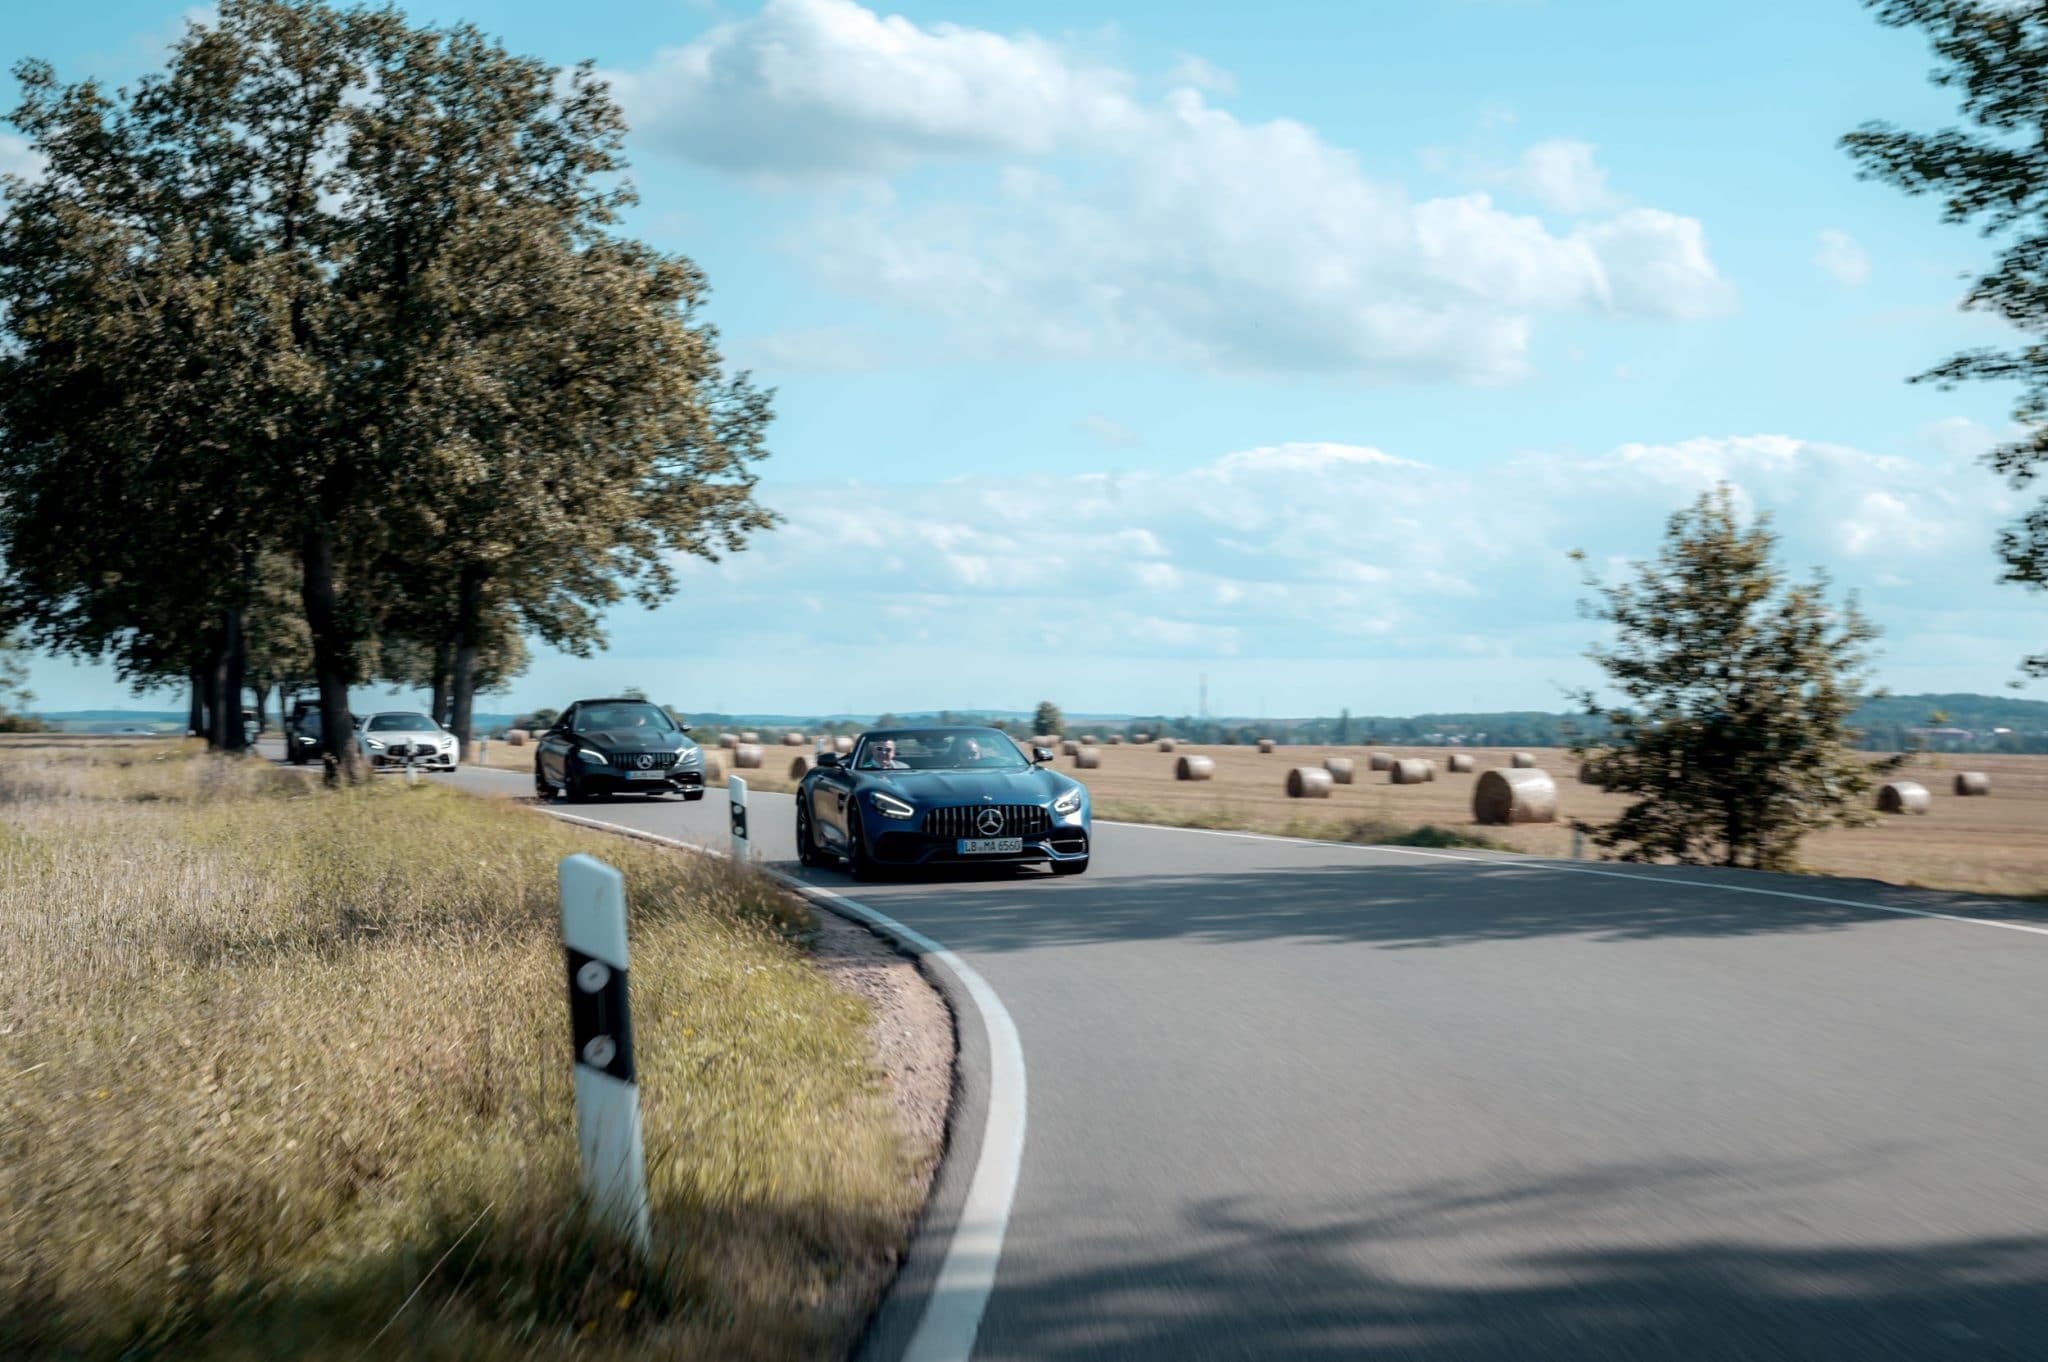 Mercedes Benz Driving Events Sachsenring 11. September 2020 397 scaled |